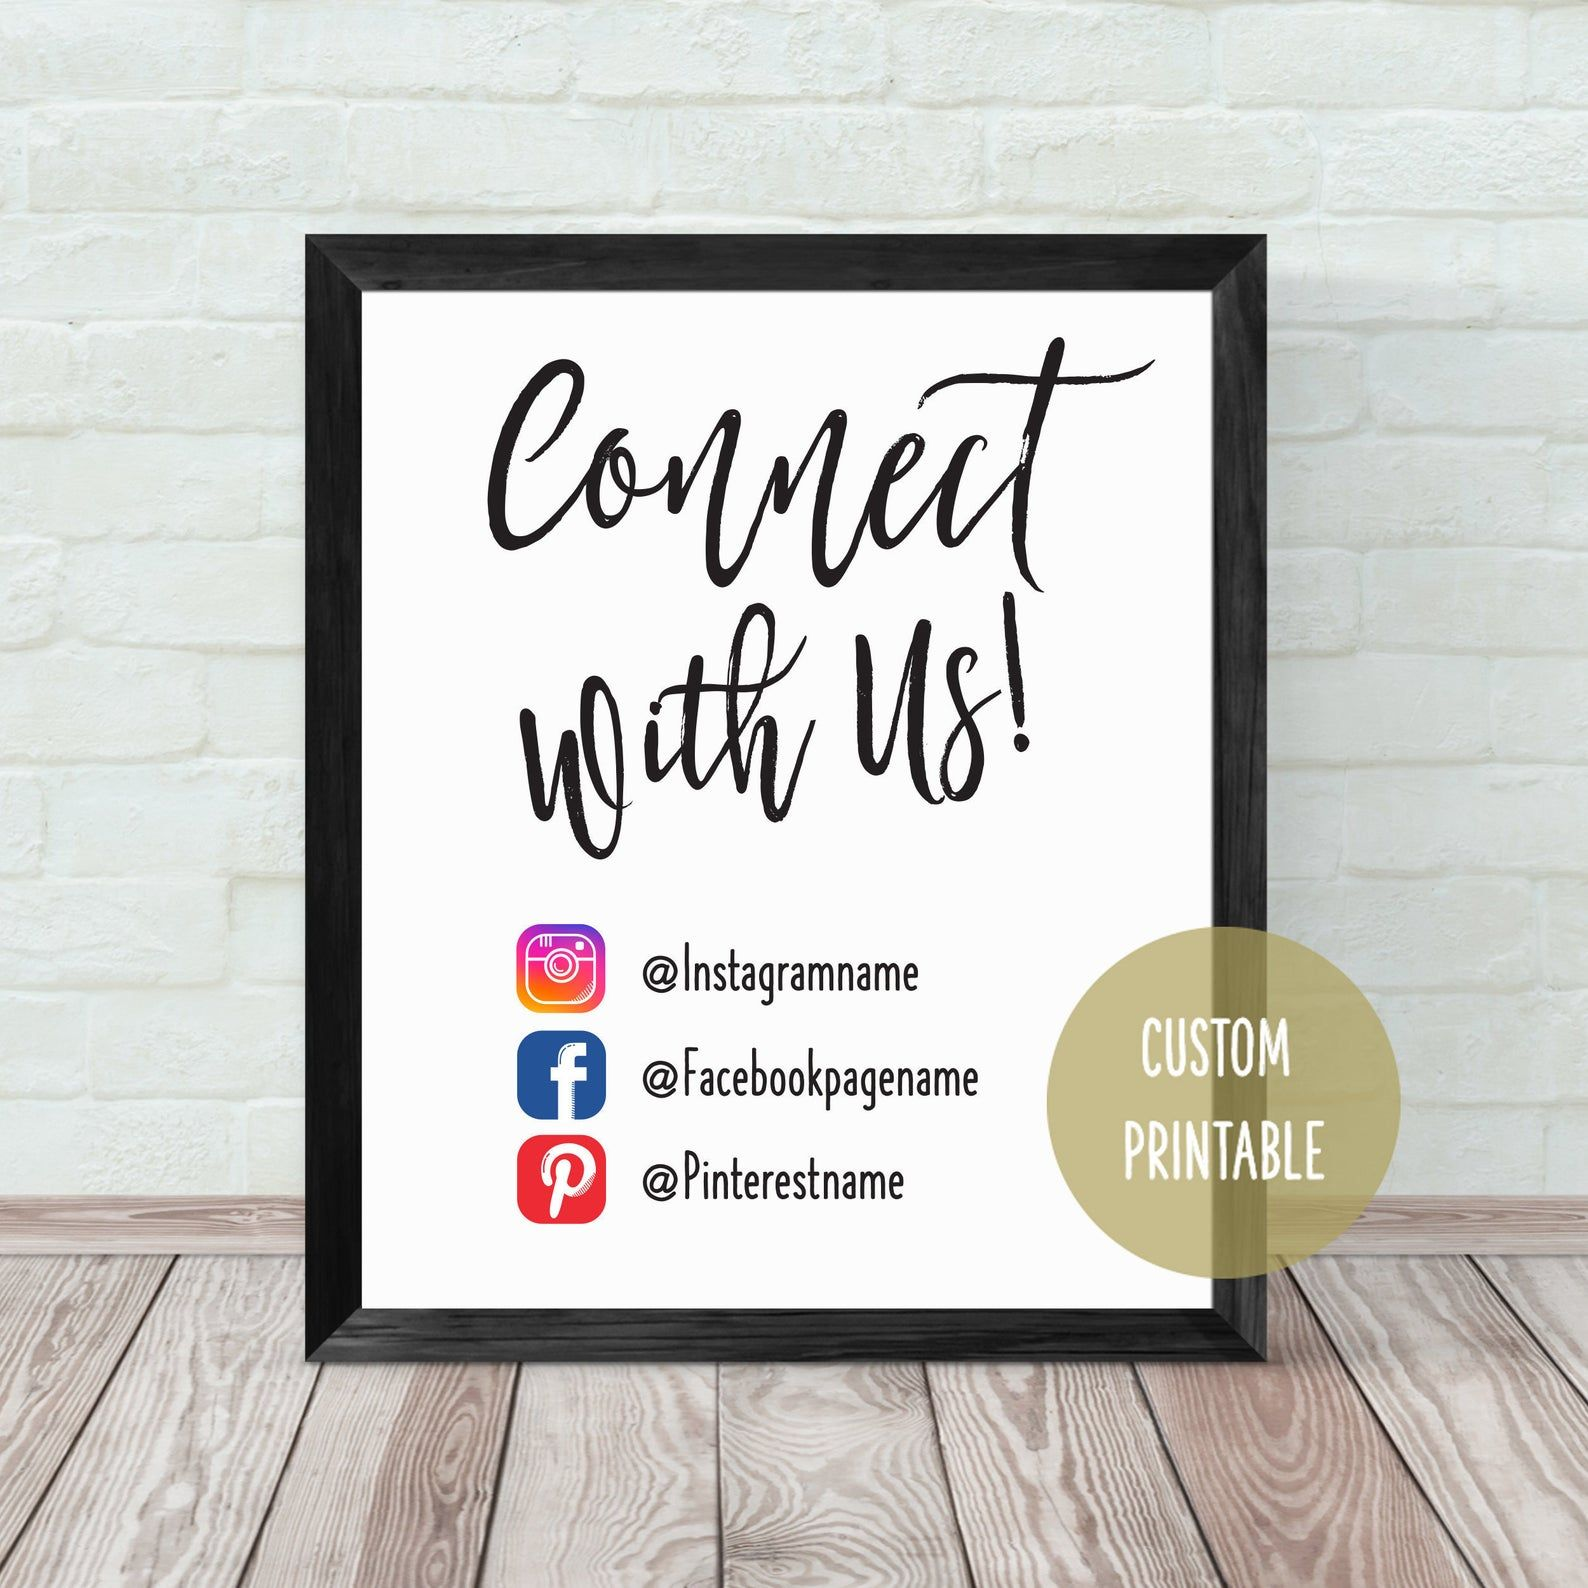 Connect With Us, Social Media Sign 8x10 Small Business